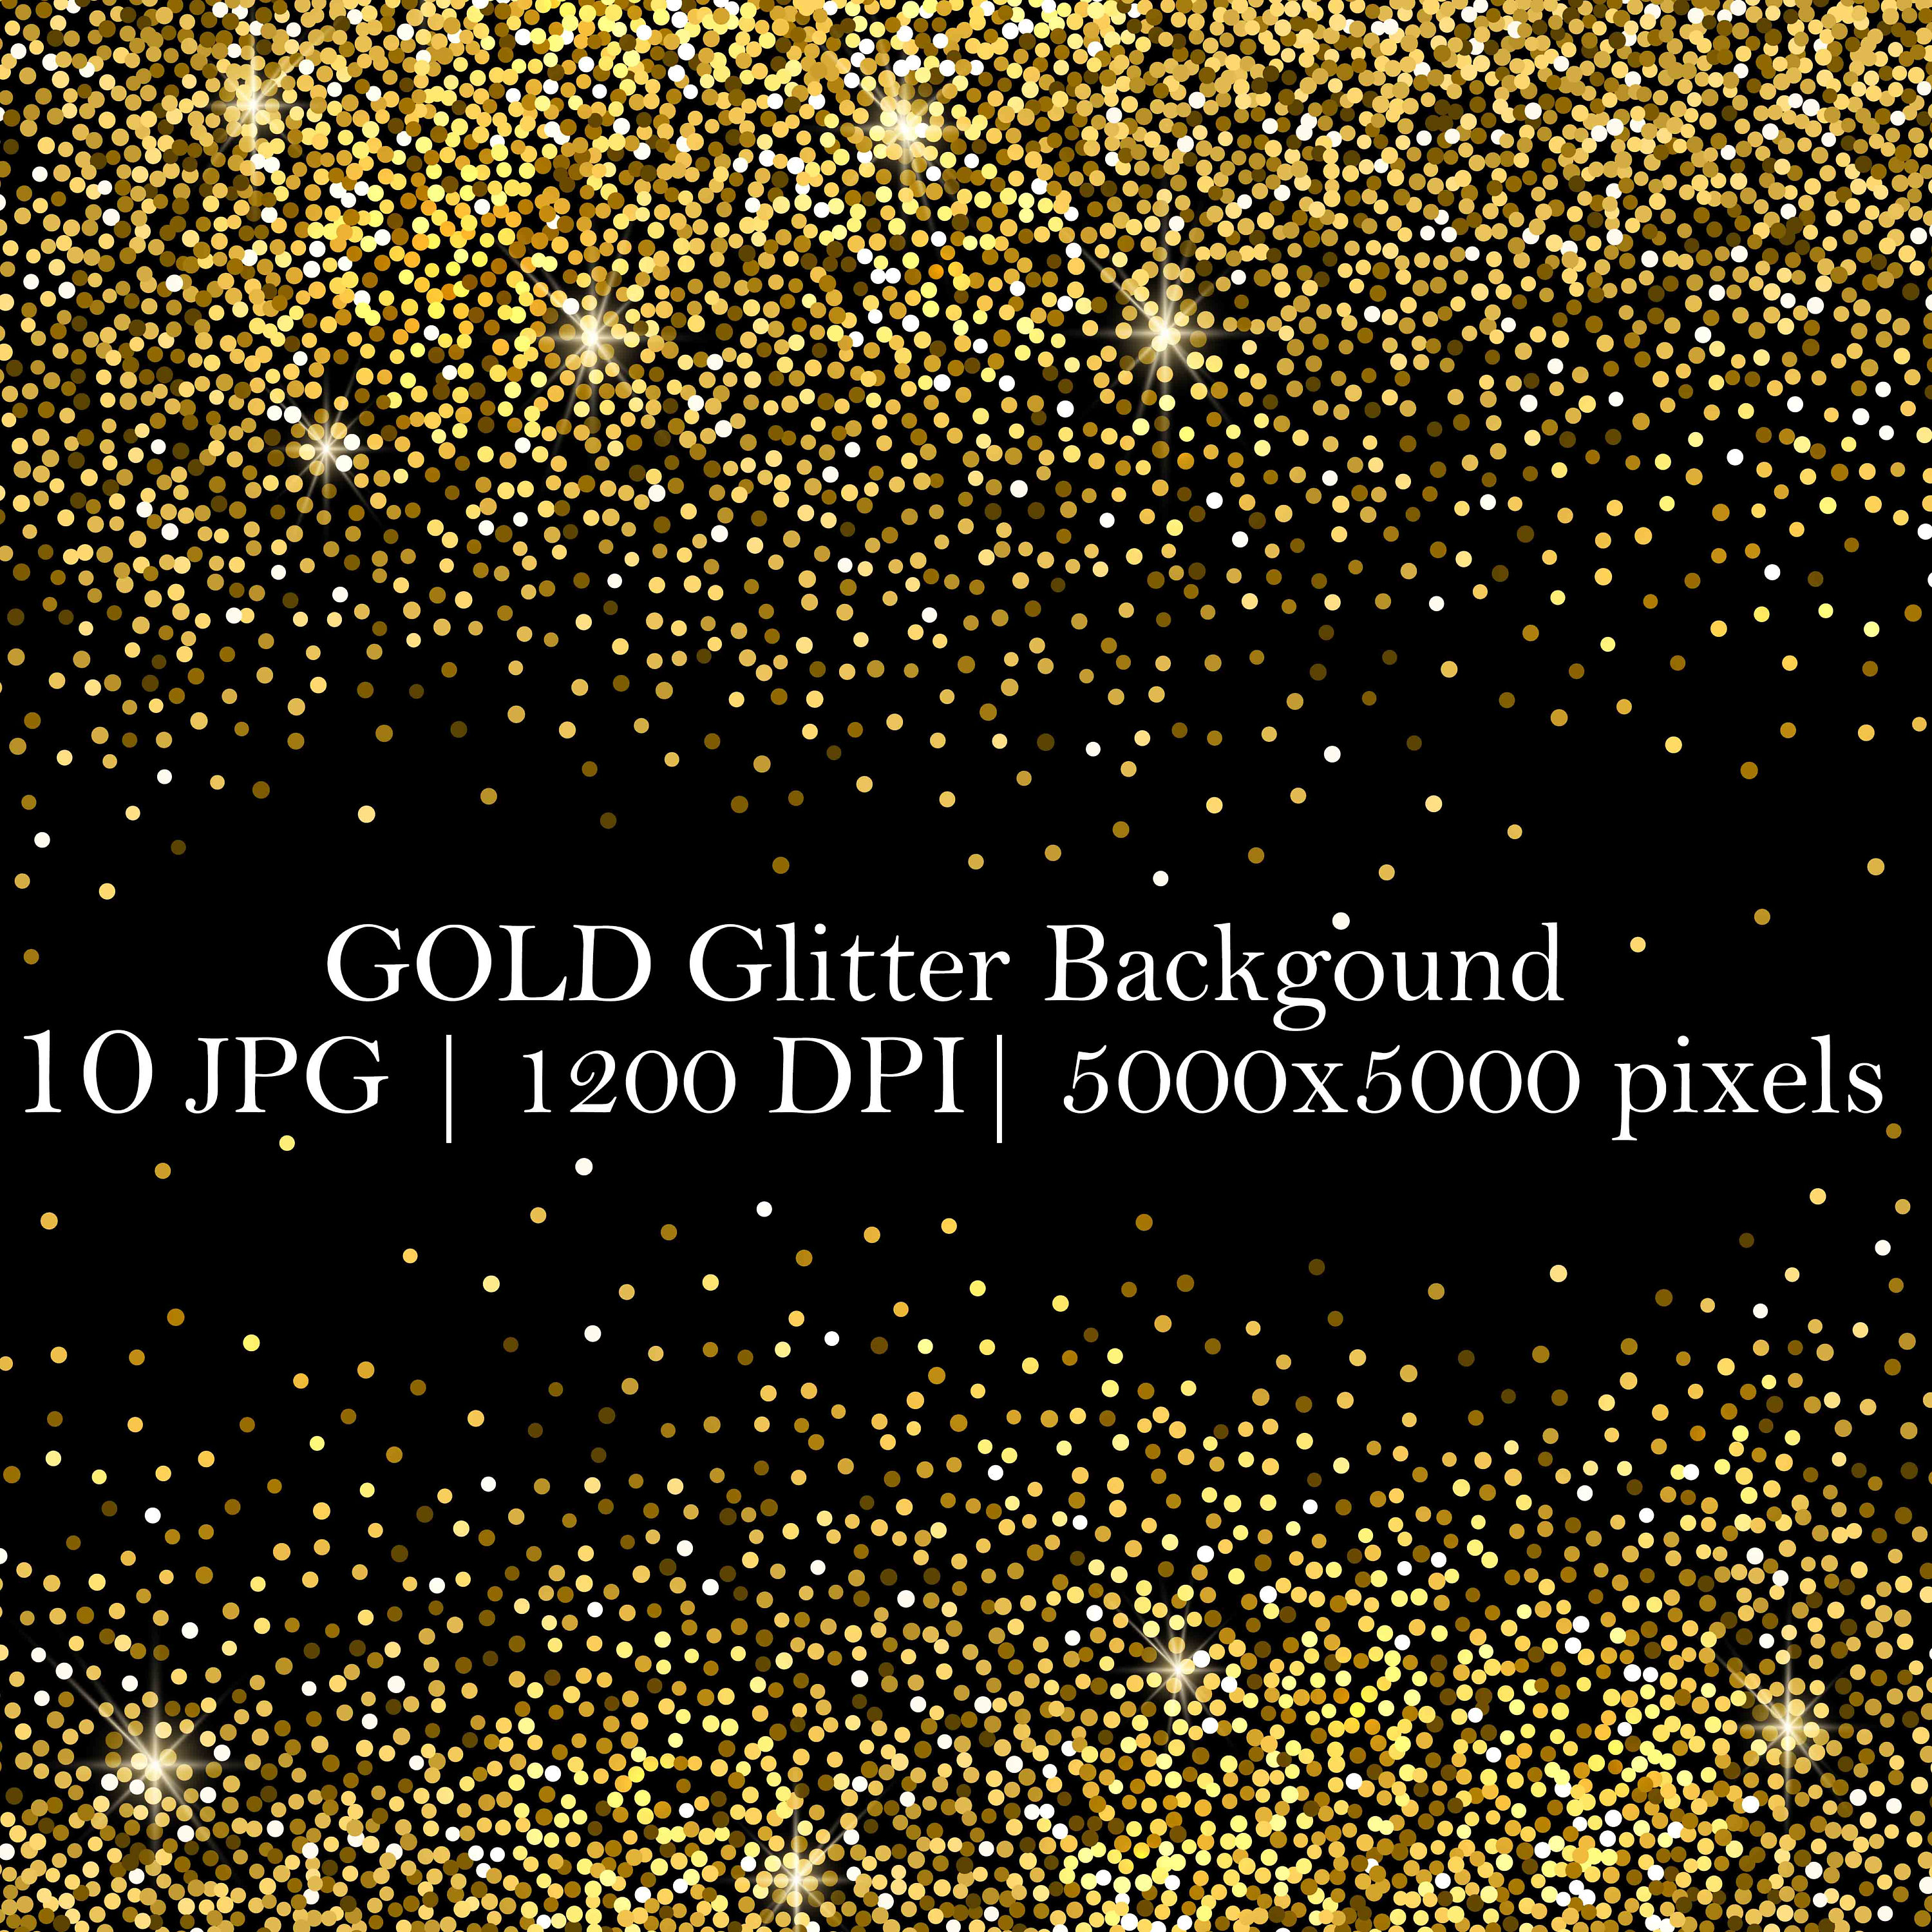 Gold Glitter Background Overlays Set 10 Jpg Files Photoshop Etsy